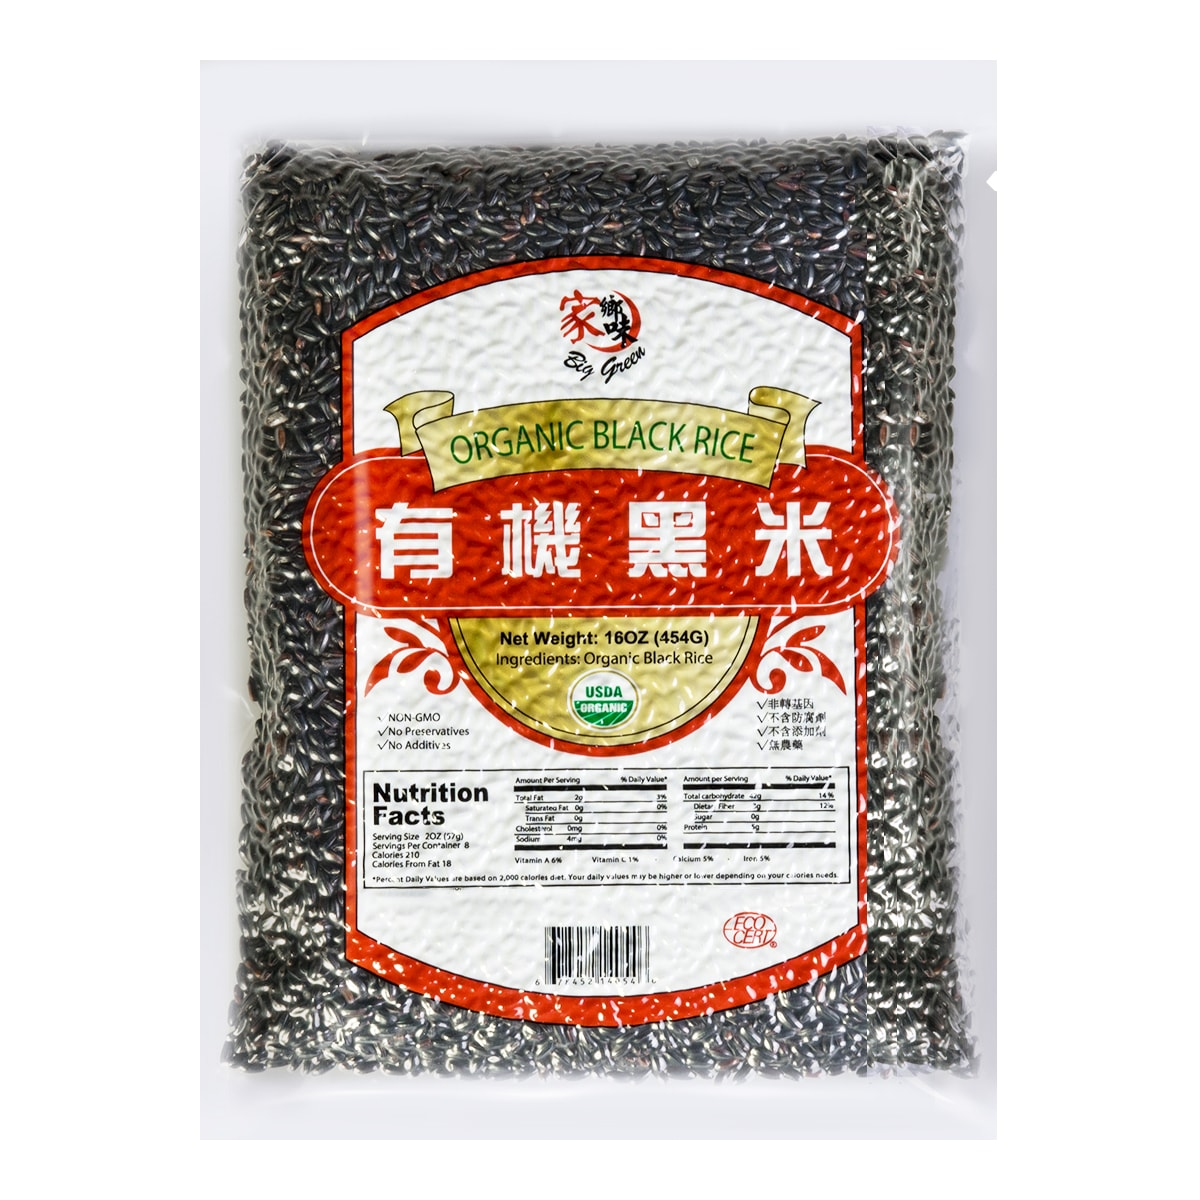 BIG GREEN Organic Black Rice 454g